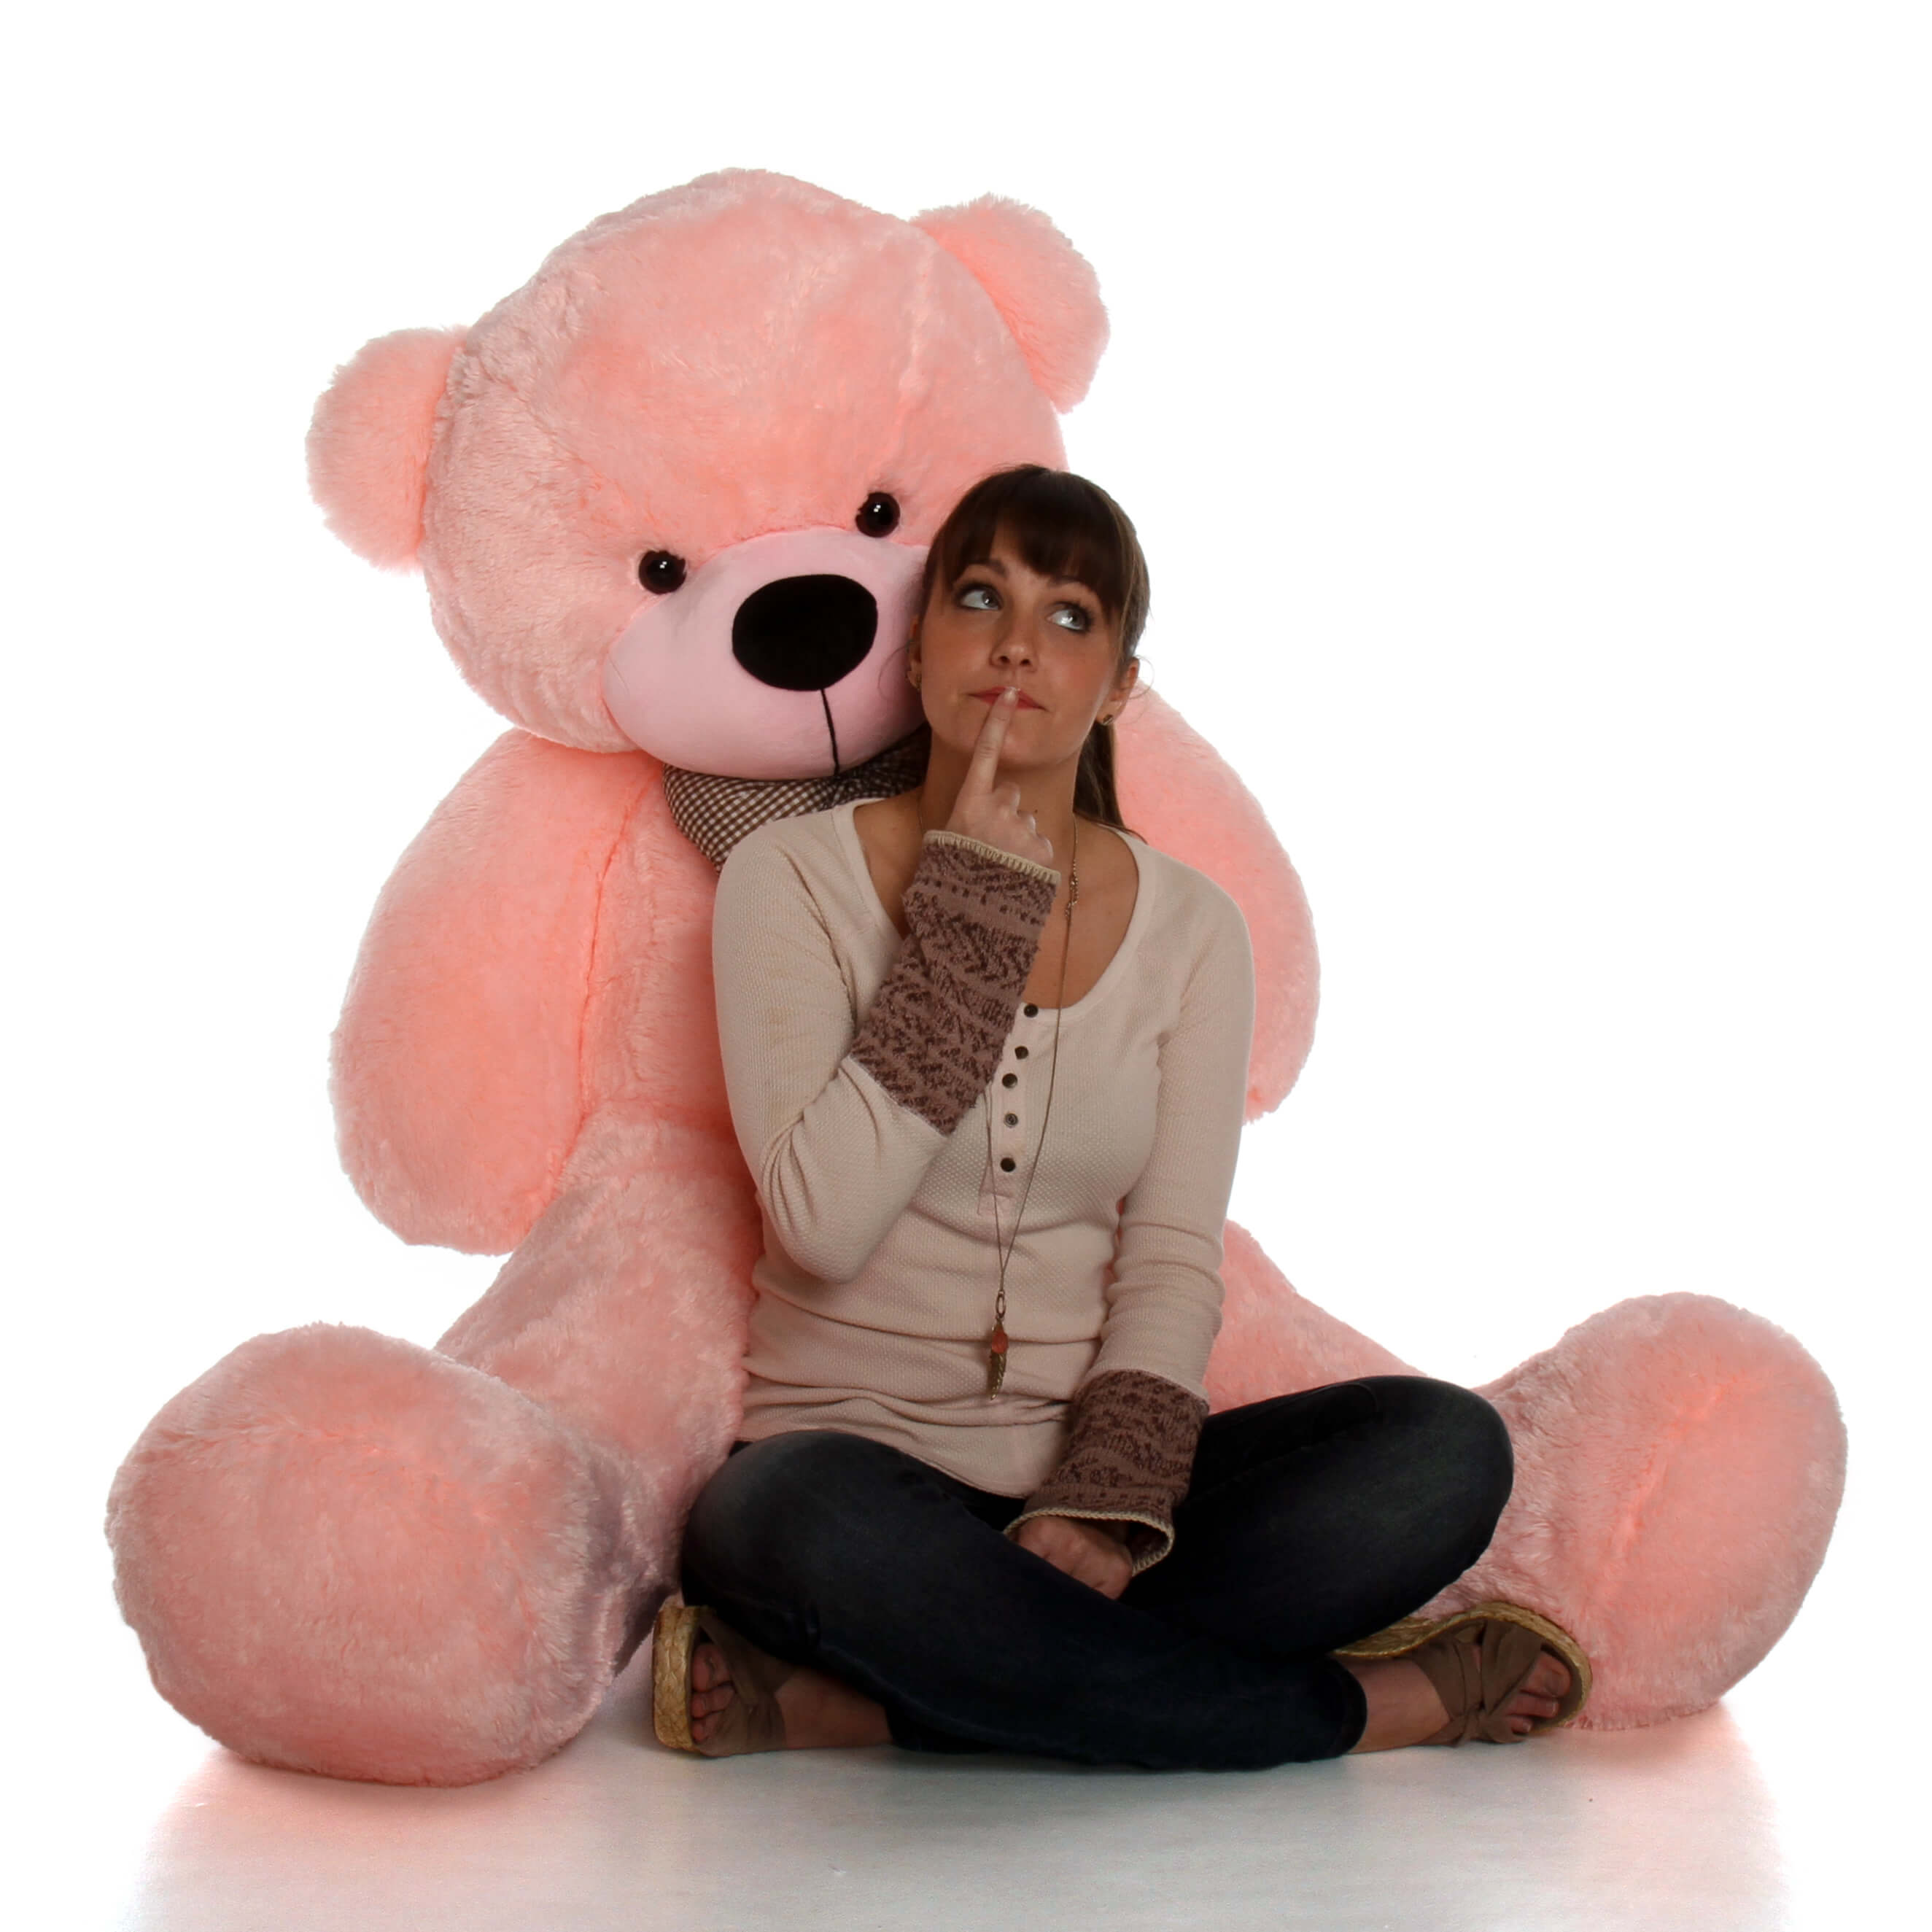 60in-soft-pink-teddy-bear-huge-life-size-plush-teddy-bear-toy-sweet-lady-cuddles-1.jpg